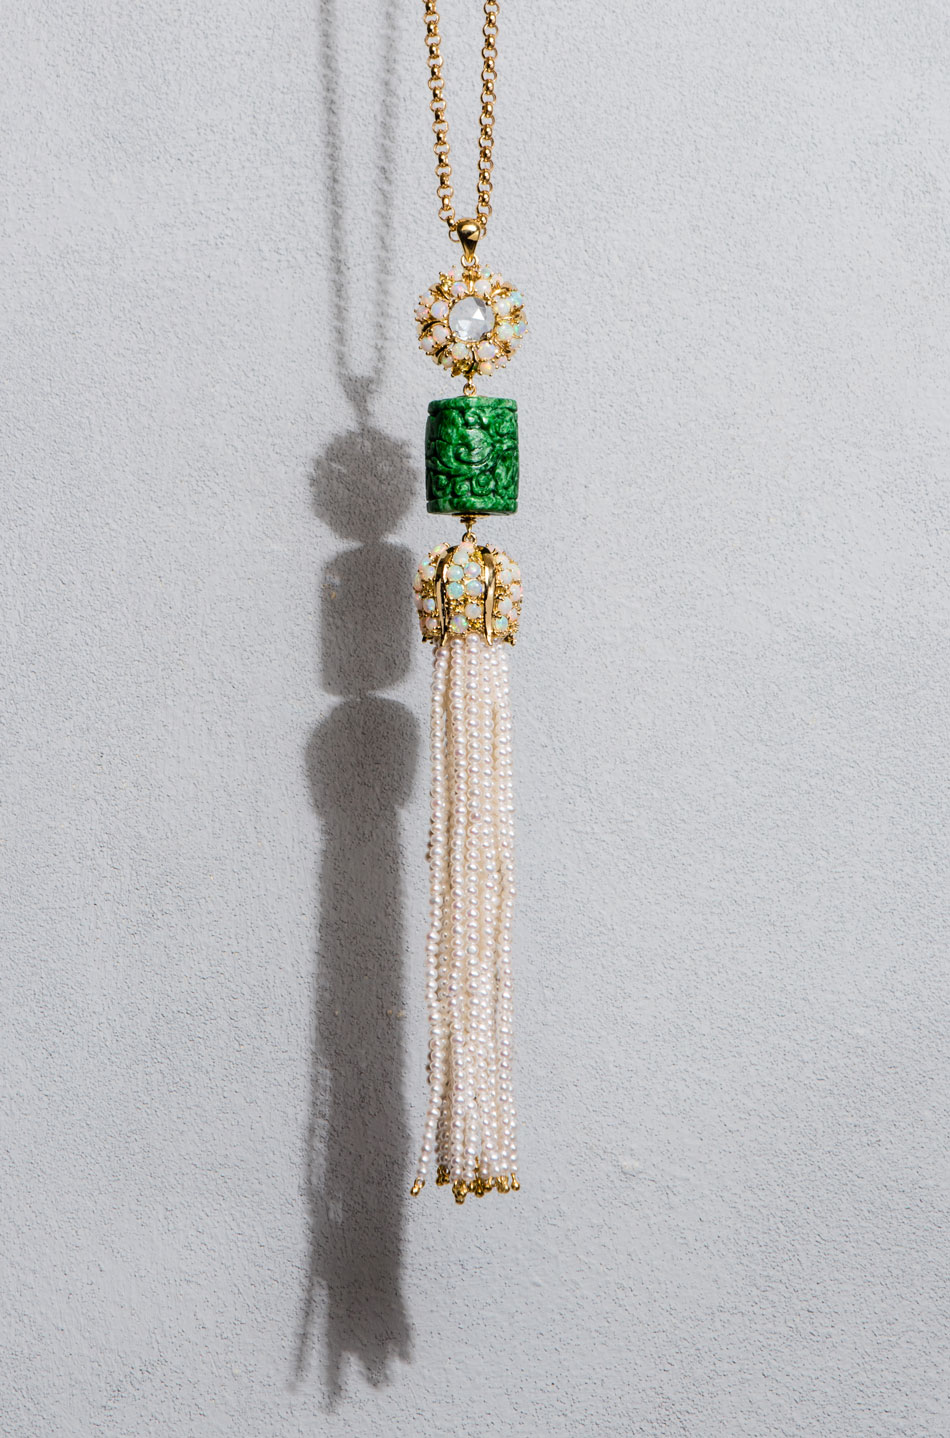 webPaul-Syjuco-tassel-pendant-of-sapphires-Ethiopian-opals-jadeite-carving-and-seed-pearls-in-gold